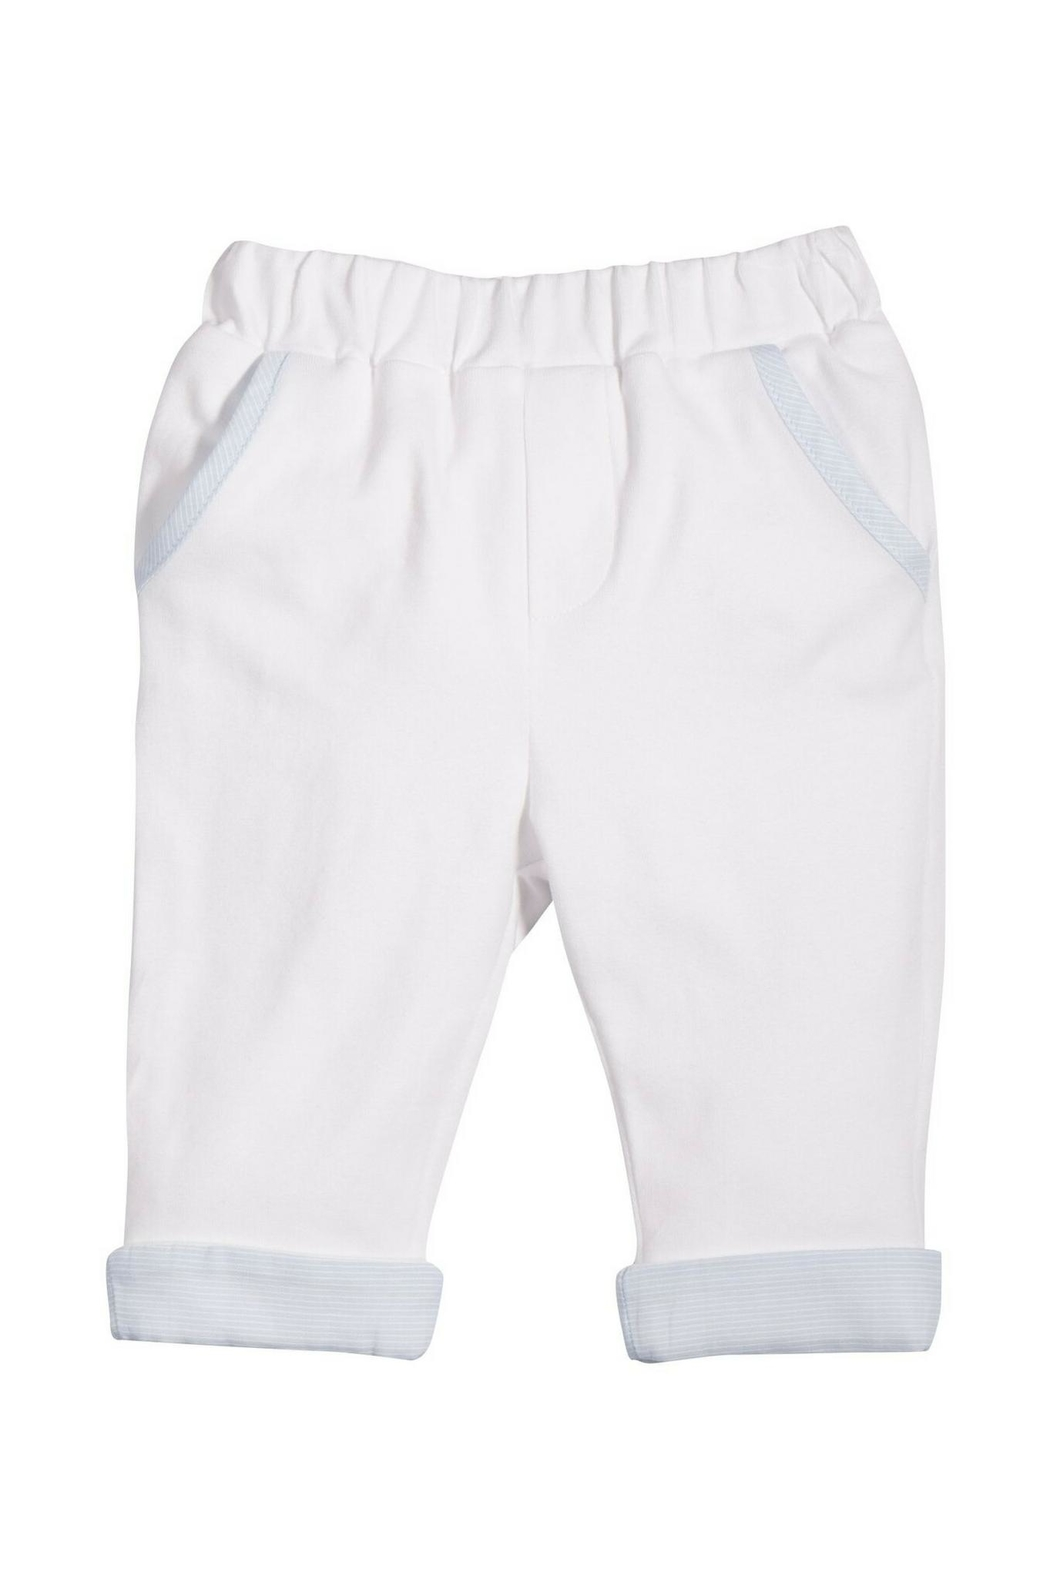 Patachou White Cotton Pants - Front Cropped Image